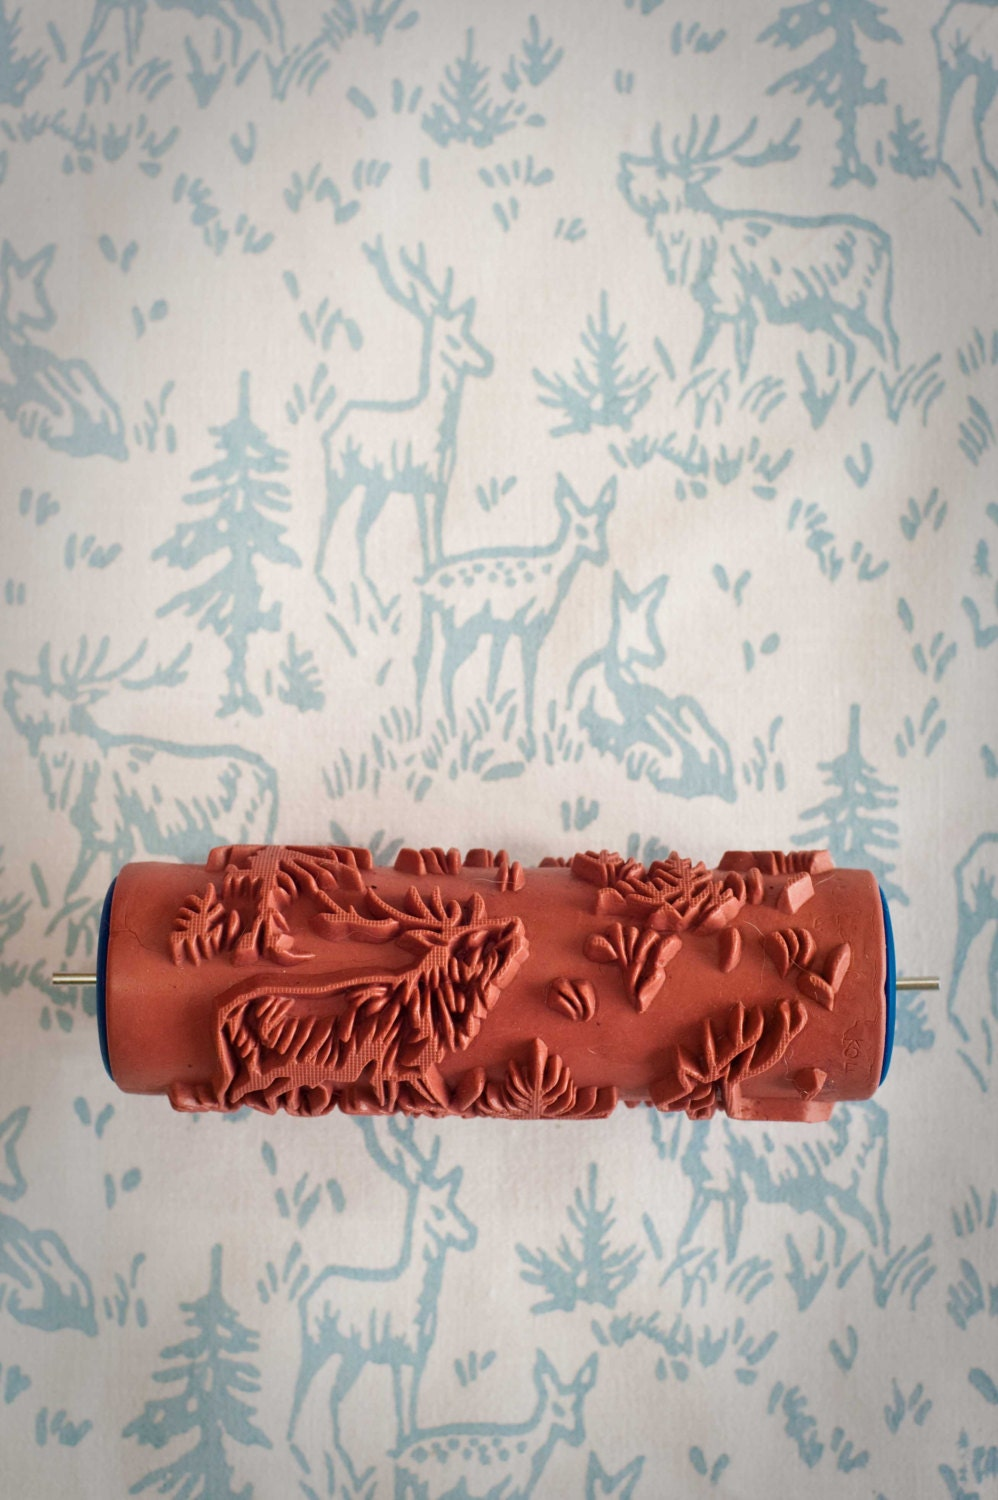 No 6 Patterned Paint Roller From The Painted House Interiors Inside Ideas Interiors design about Everything [magnanprojects.com]